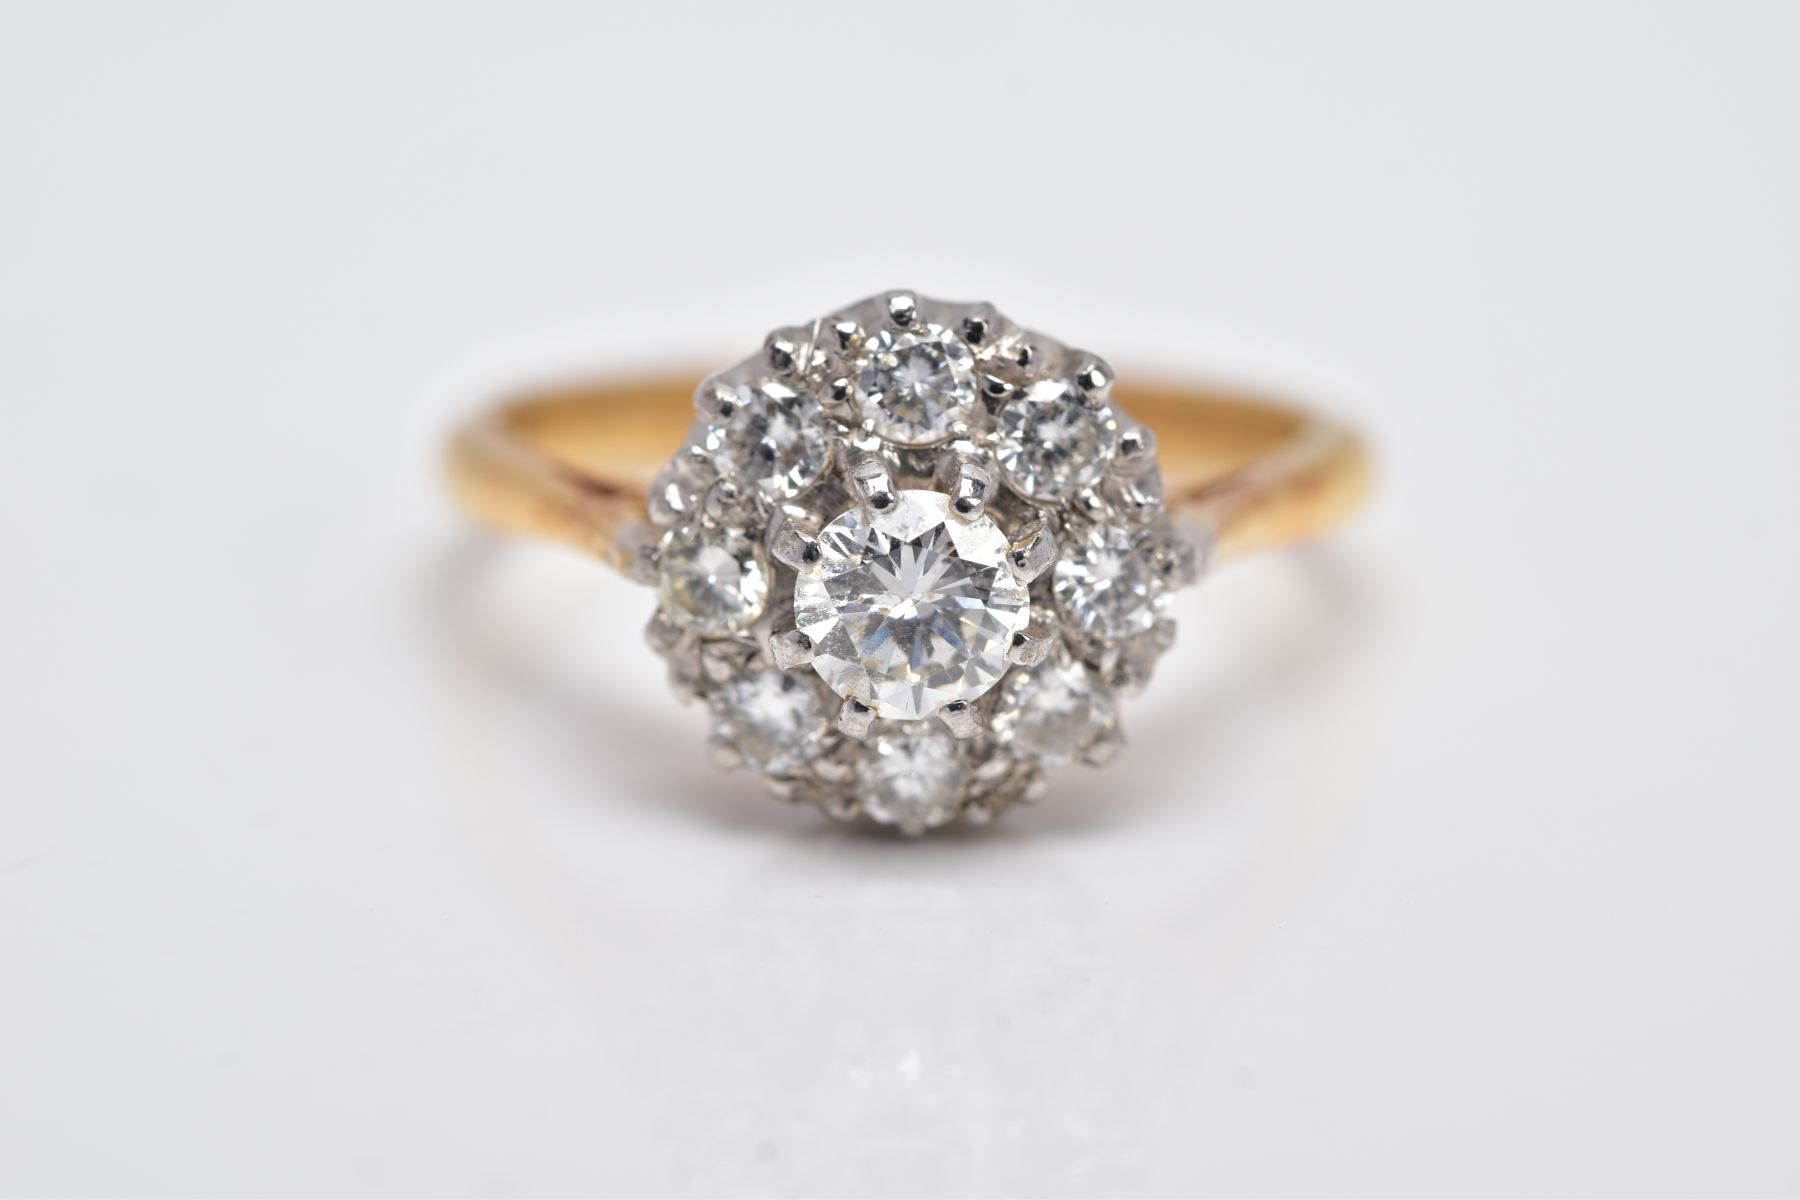 A LATE 20TH CENTURY ROUND DIAMOND CLUSTER RING, centring on a modern round brilliant cut diamond, - Image 5 of 5